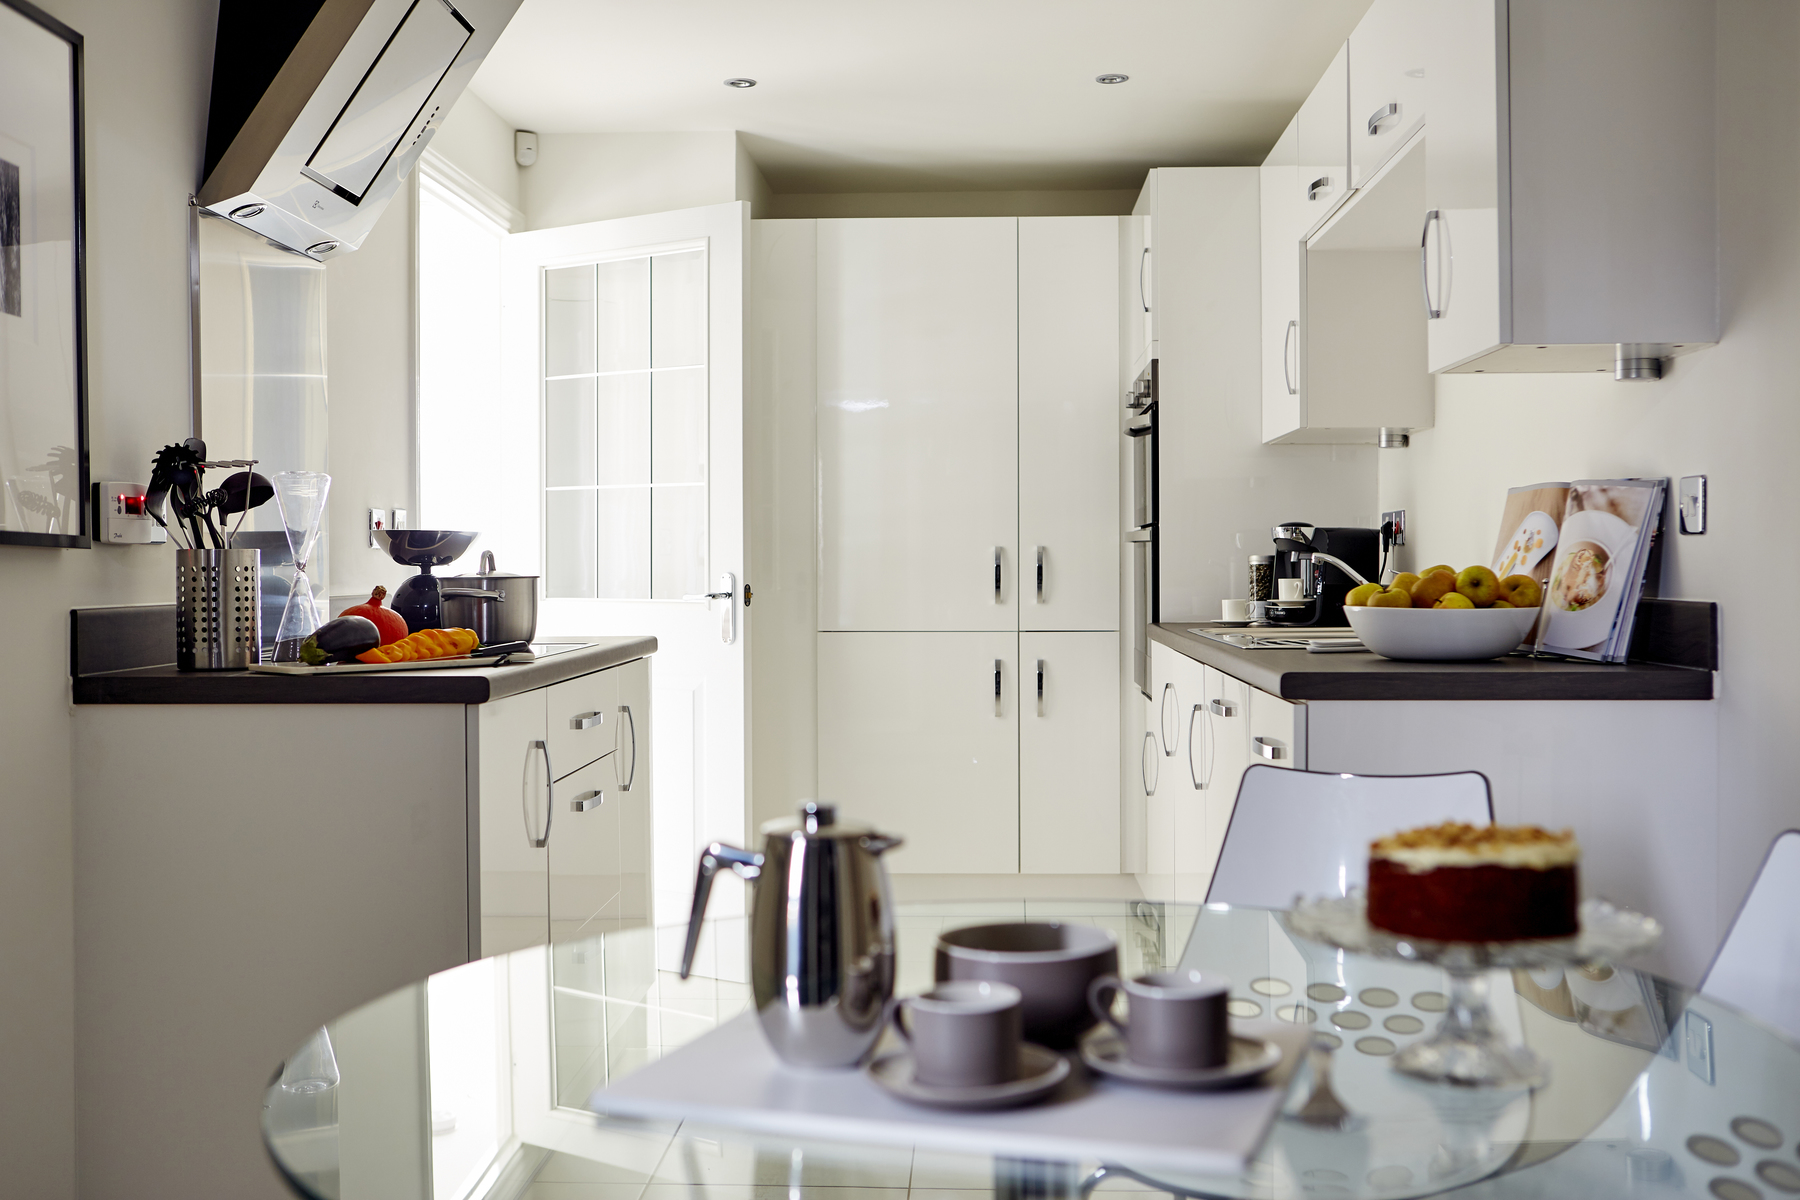 tw_nmids_sutton_grange_pd48_bradenham_kitchen